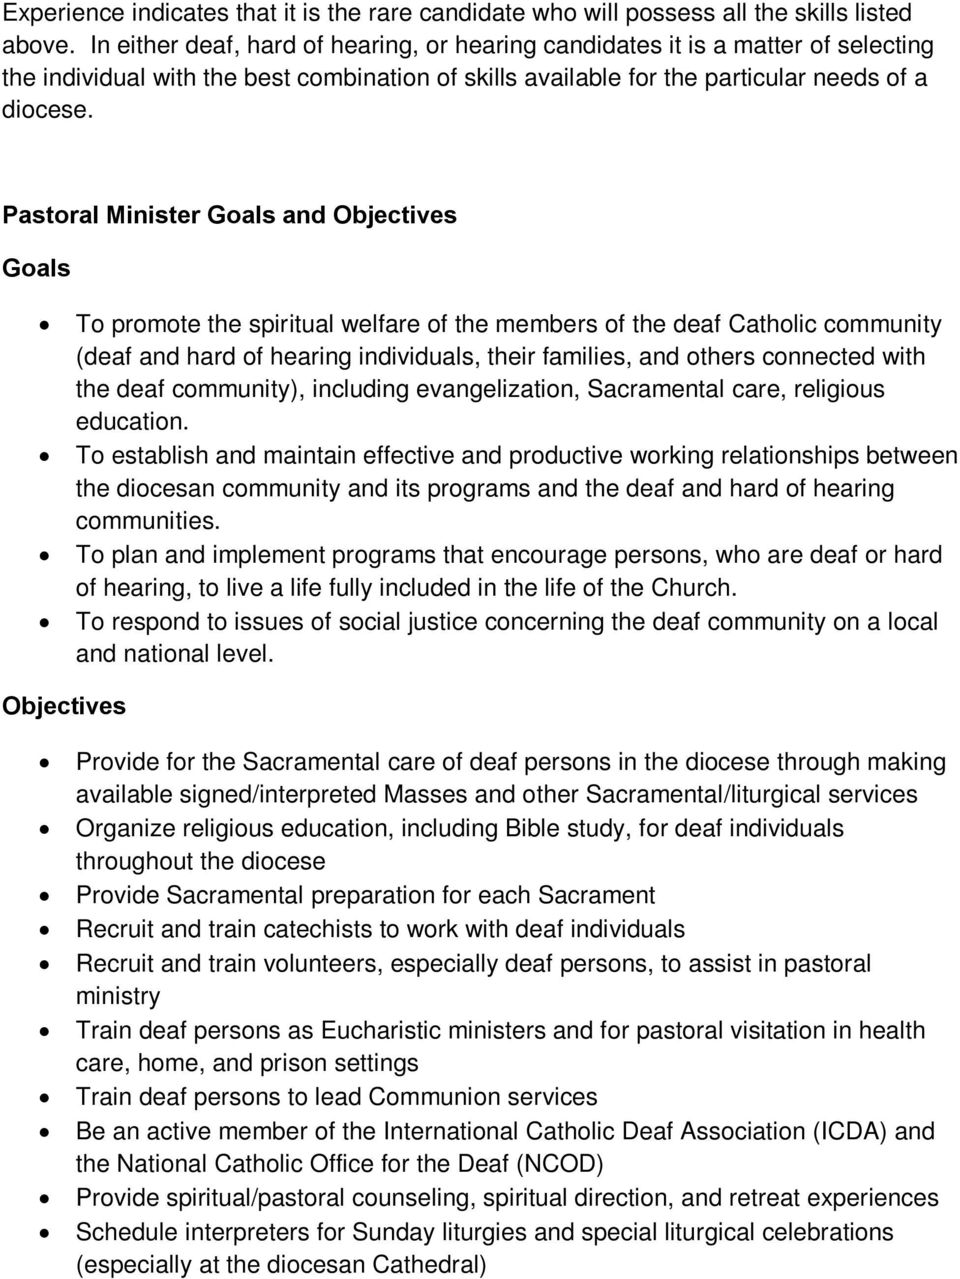 Pastoral Minister Goals and Objectives Goals To promote the spiritual welfare of the members of the deaf Catholic community (deaf and hard of hearing individuals, their families, and others connected